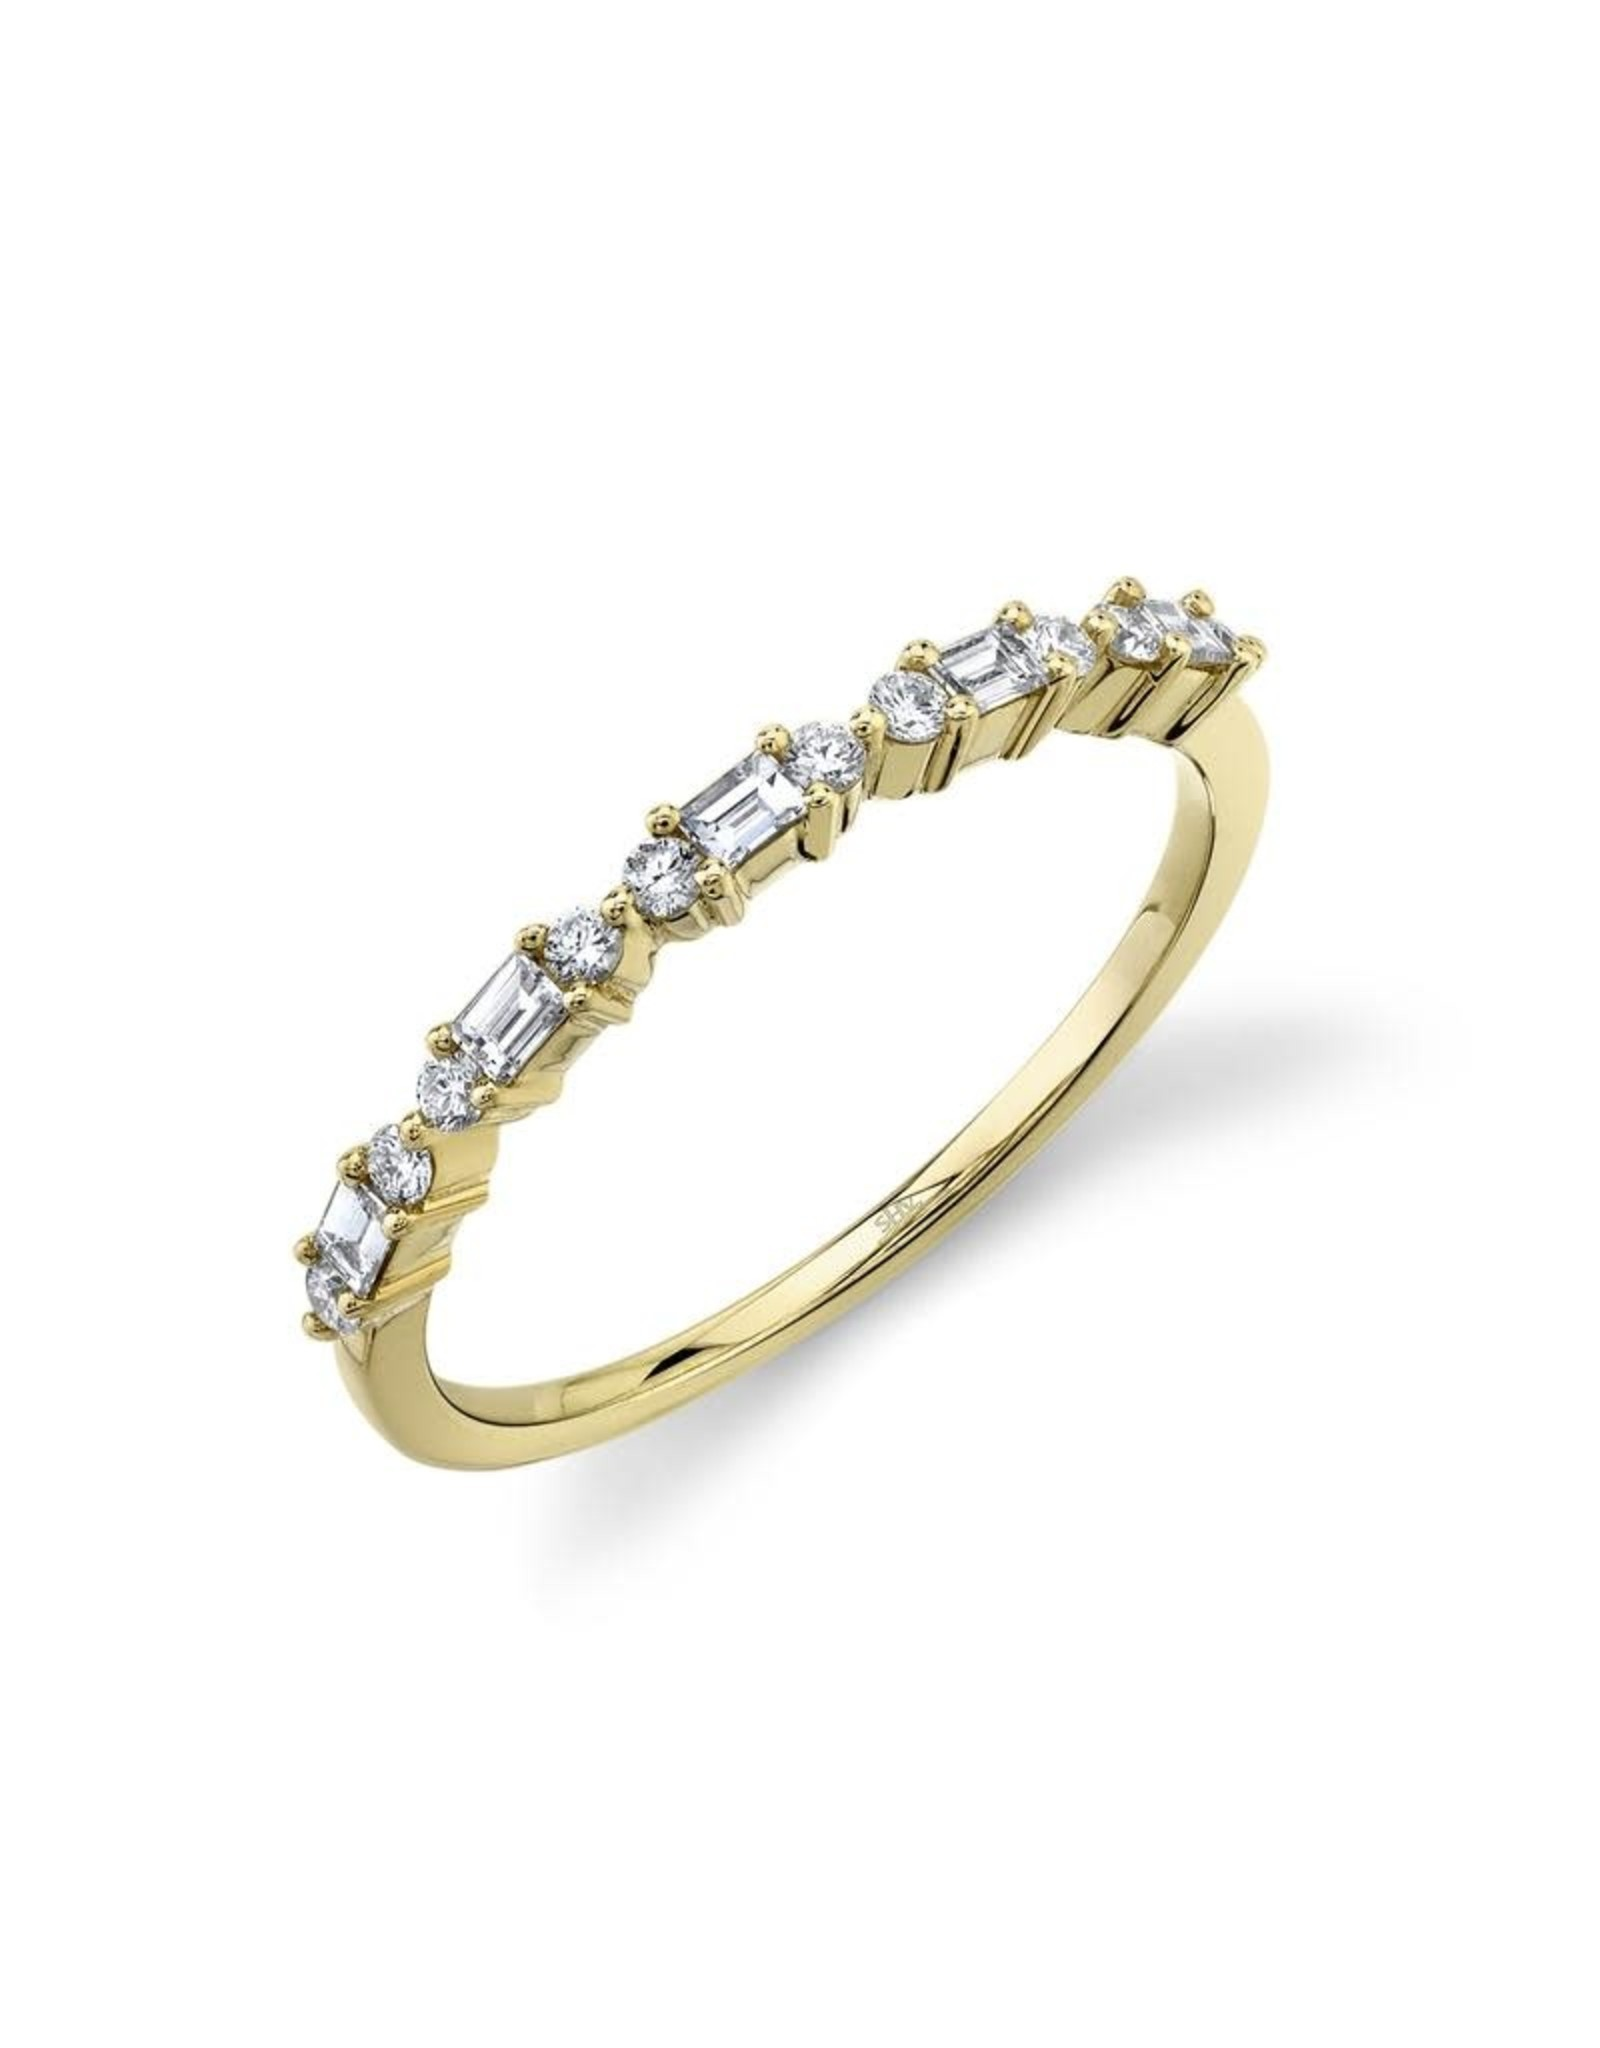 14K Yellow Gold Alternating Baguette and Round Stackable Ring, D: 0.25ct